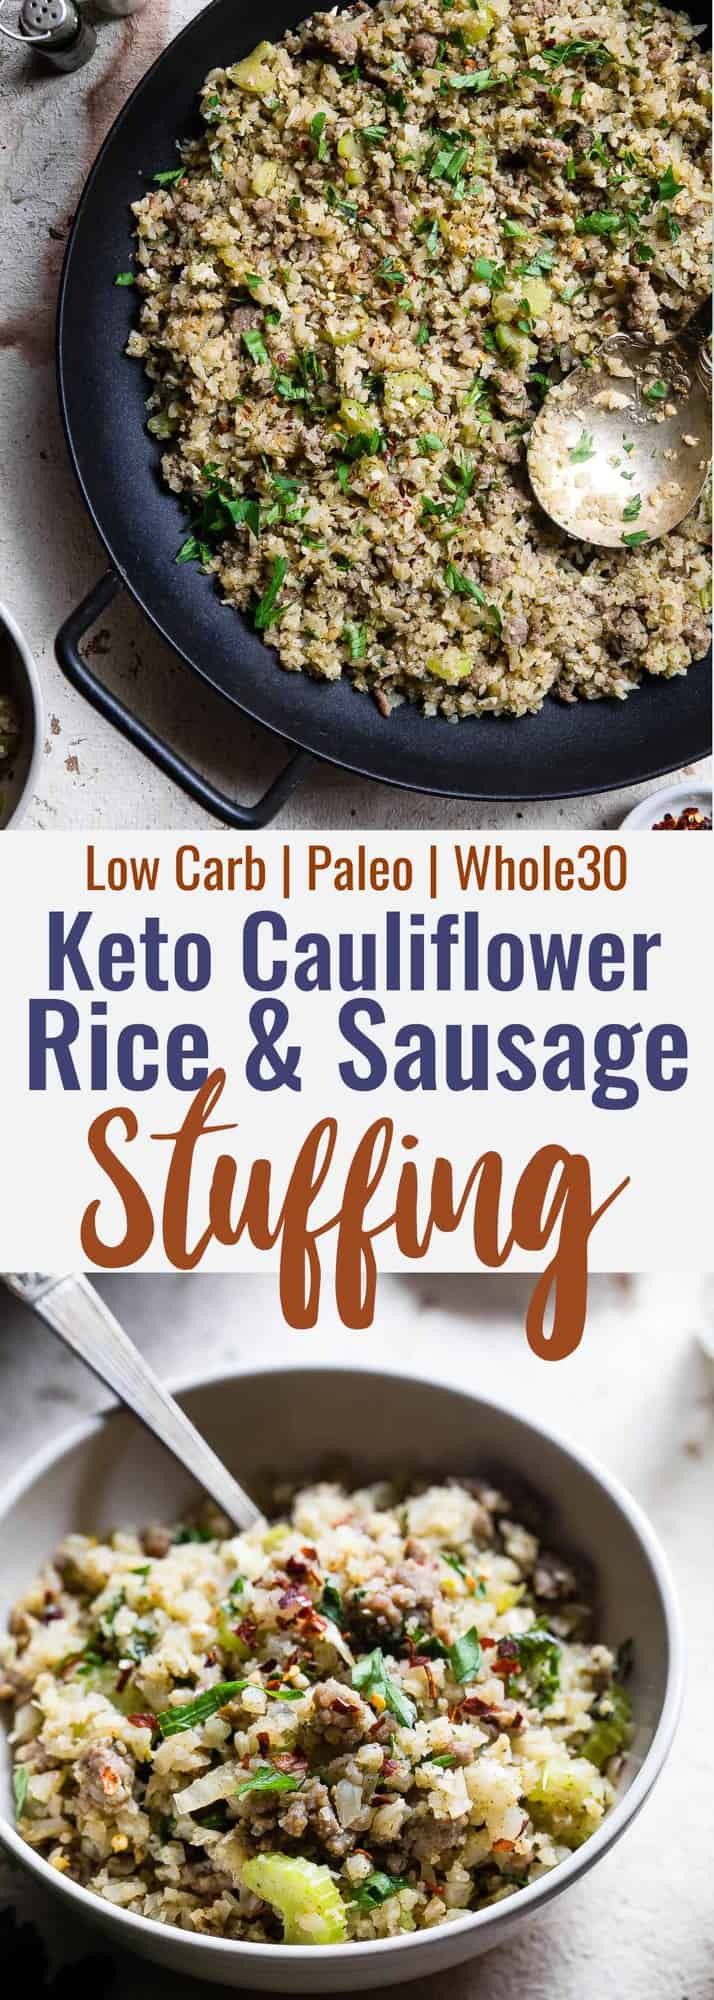 Keto Low Carb Riced Cauliflower Stuffing - This cauliflower rice stuffing is an EASY healthy holiday side that tastes like comfort food, but you won't miss the carbs! Paleo/whole30, only 150 calories and 3 SmartPoints! | #Foodfaithfitness | #Glutenfree #Paleo #Lowcarb #Keto #Whole30